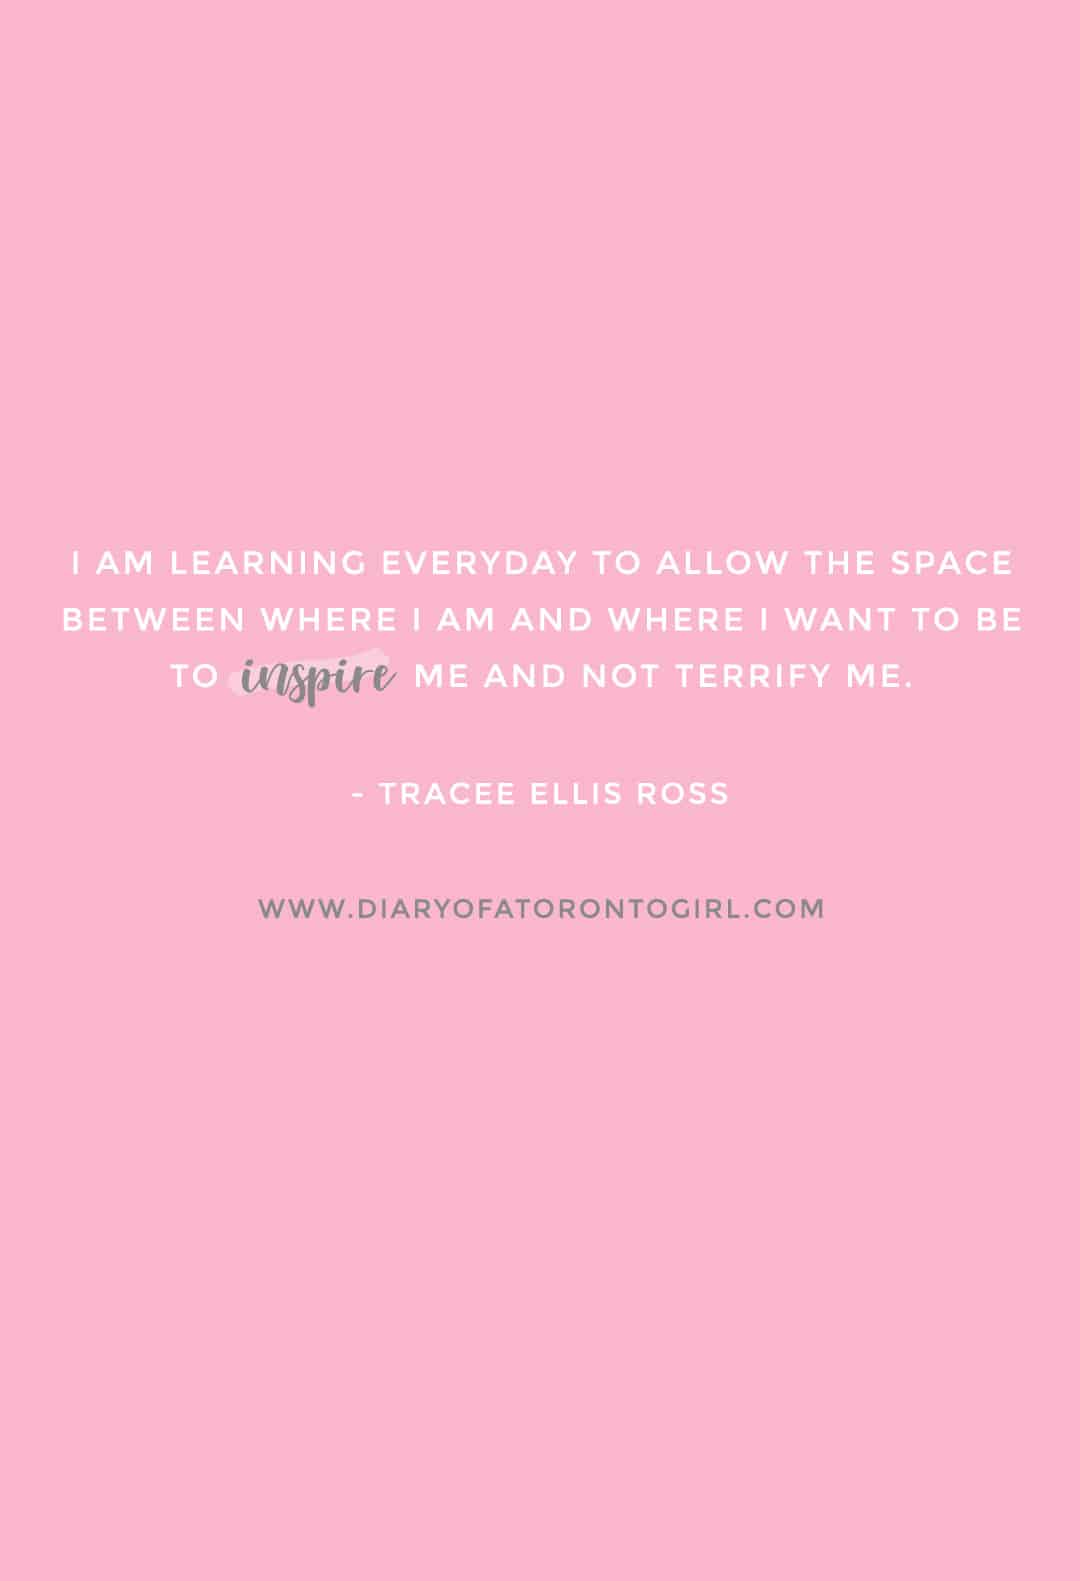 Tracee Ellis Ross inspirational quote